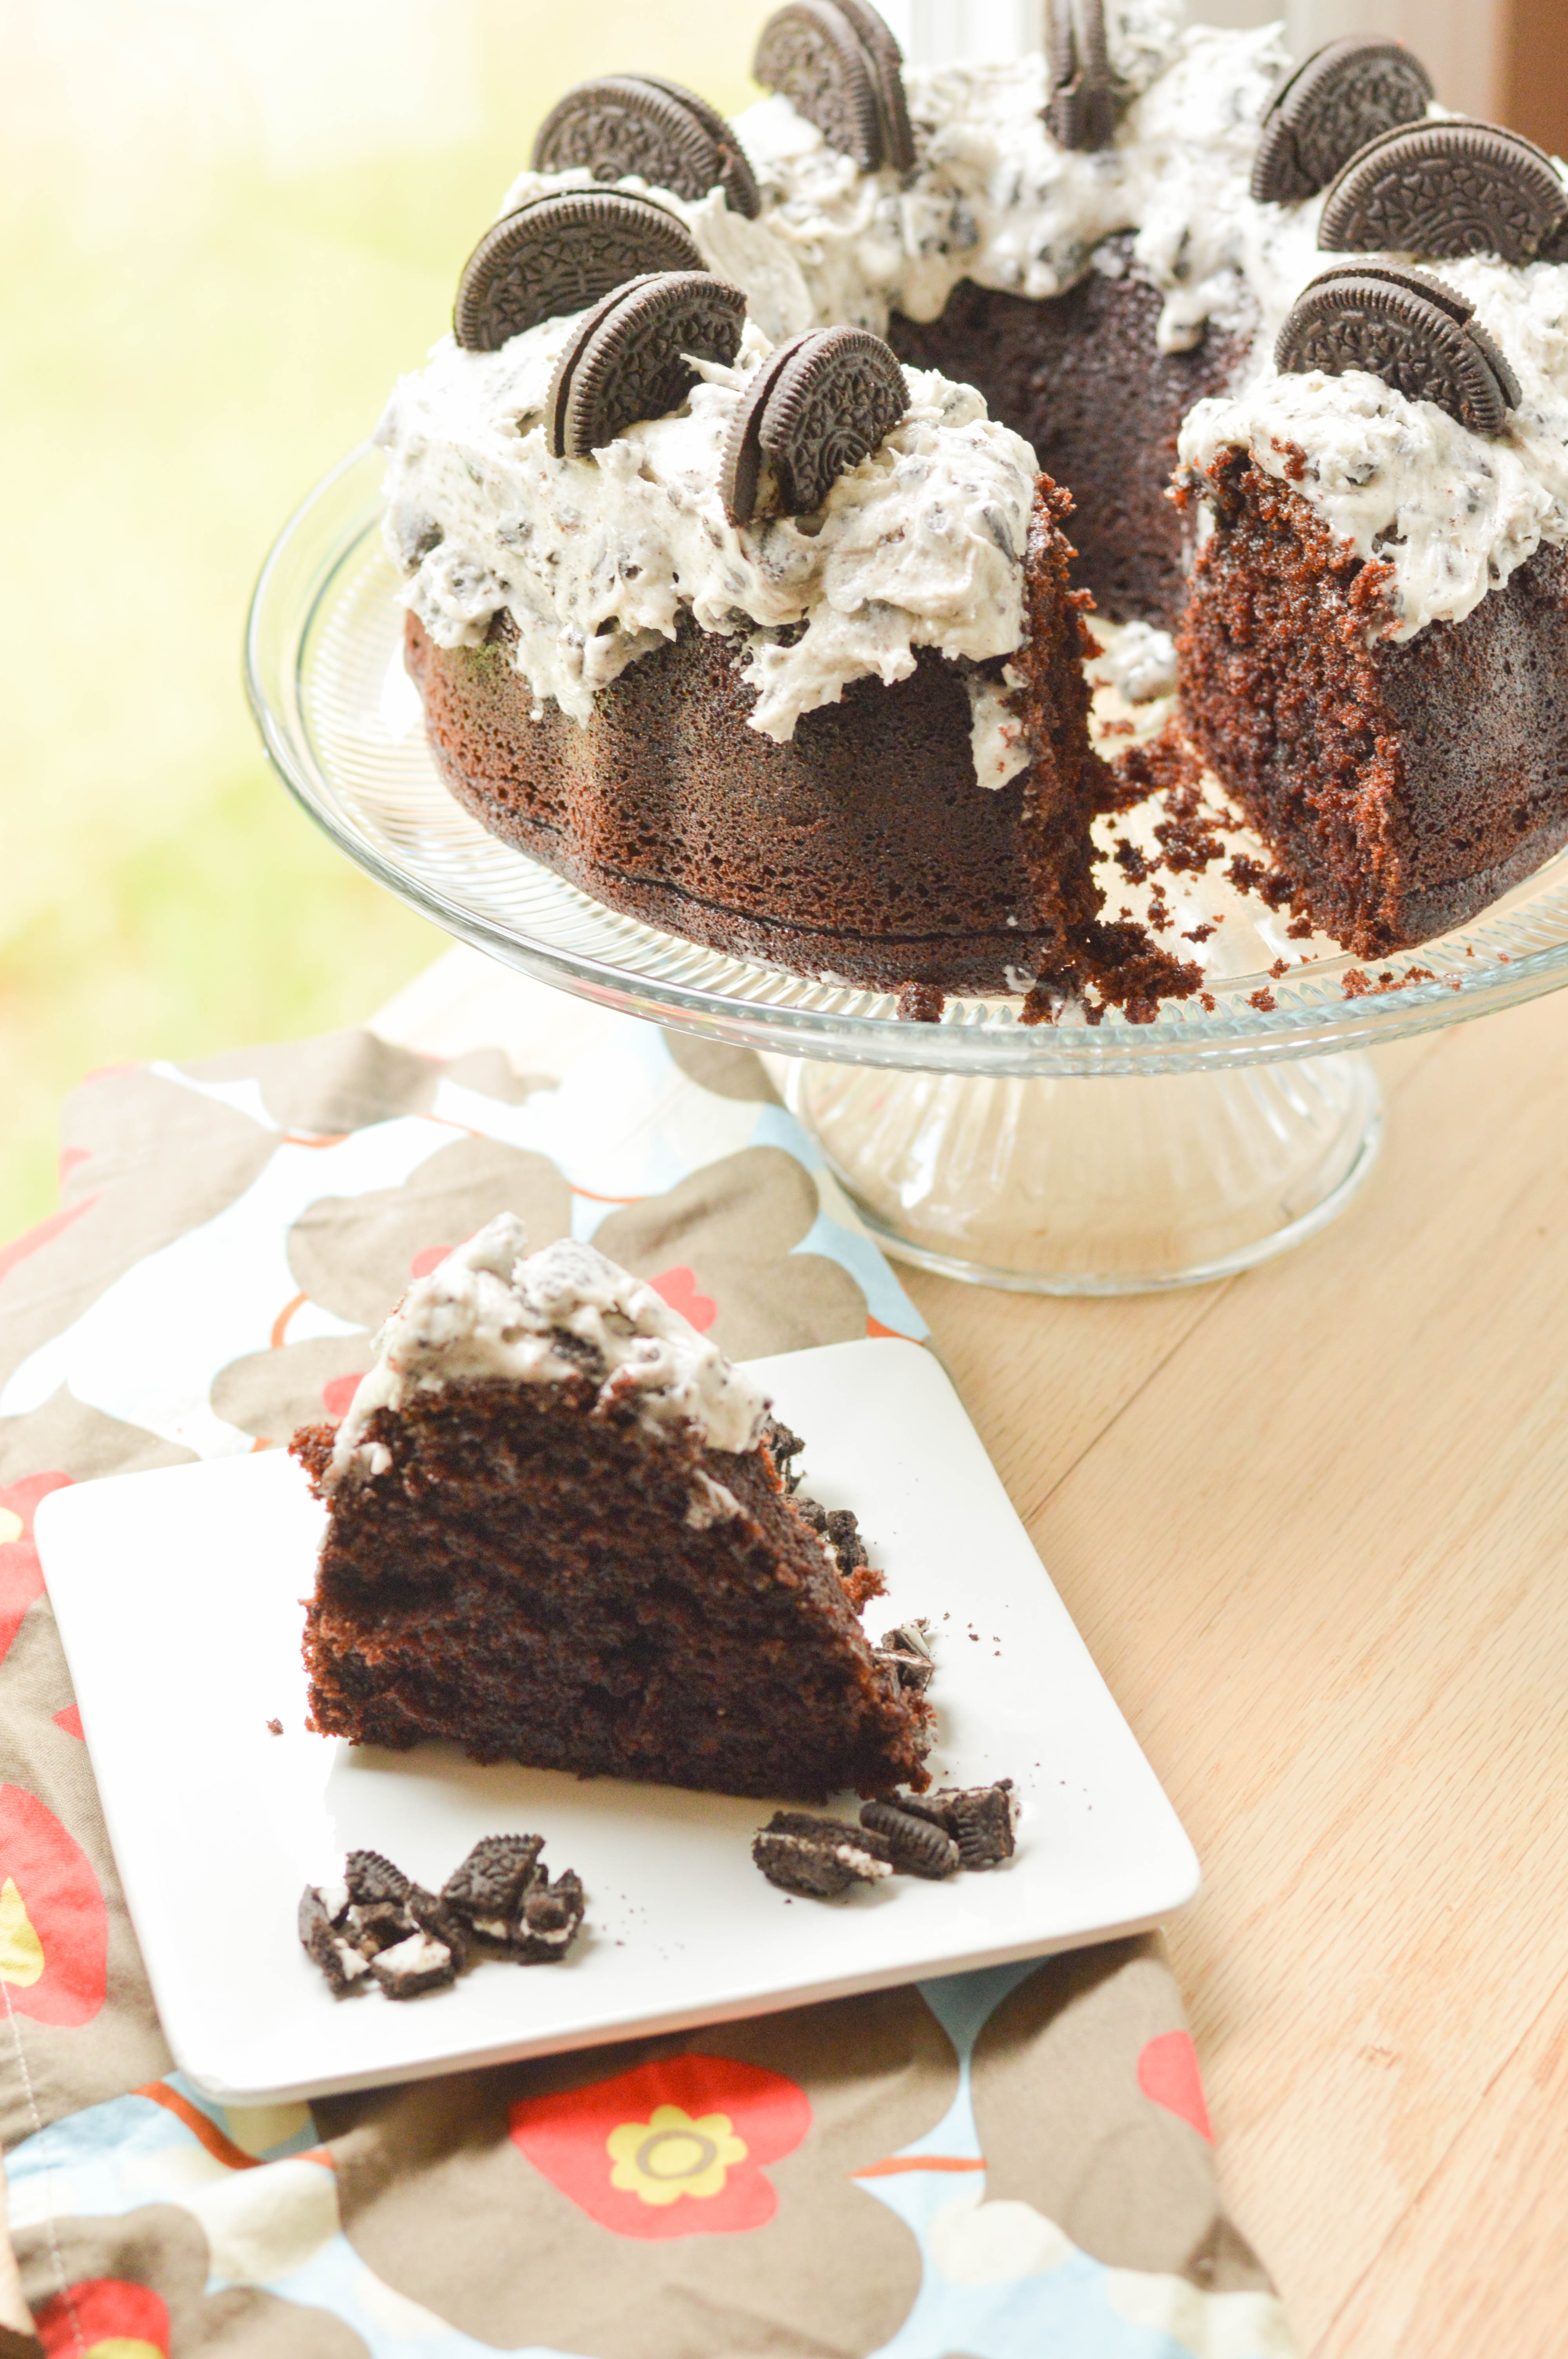 Chocolate Oreo Bundt Cake Macaroni And Cheesecake